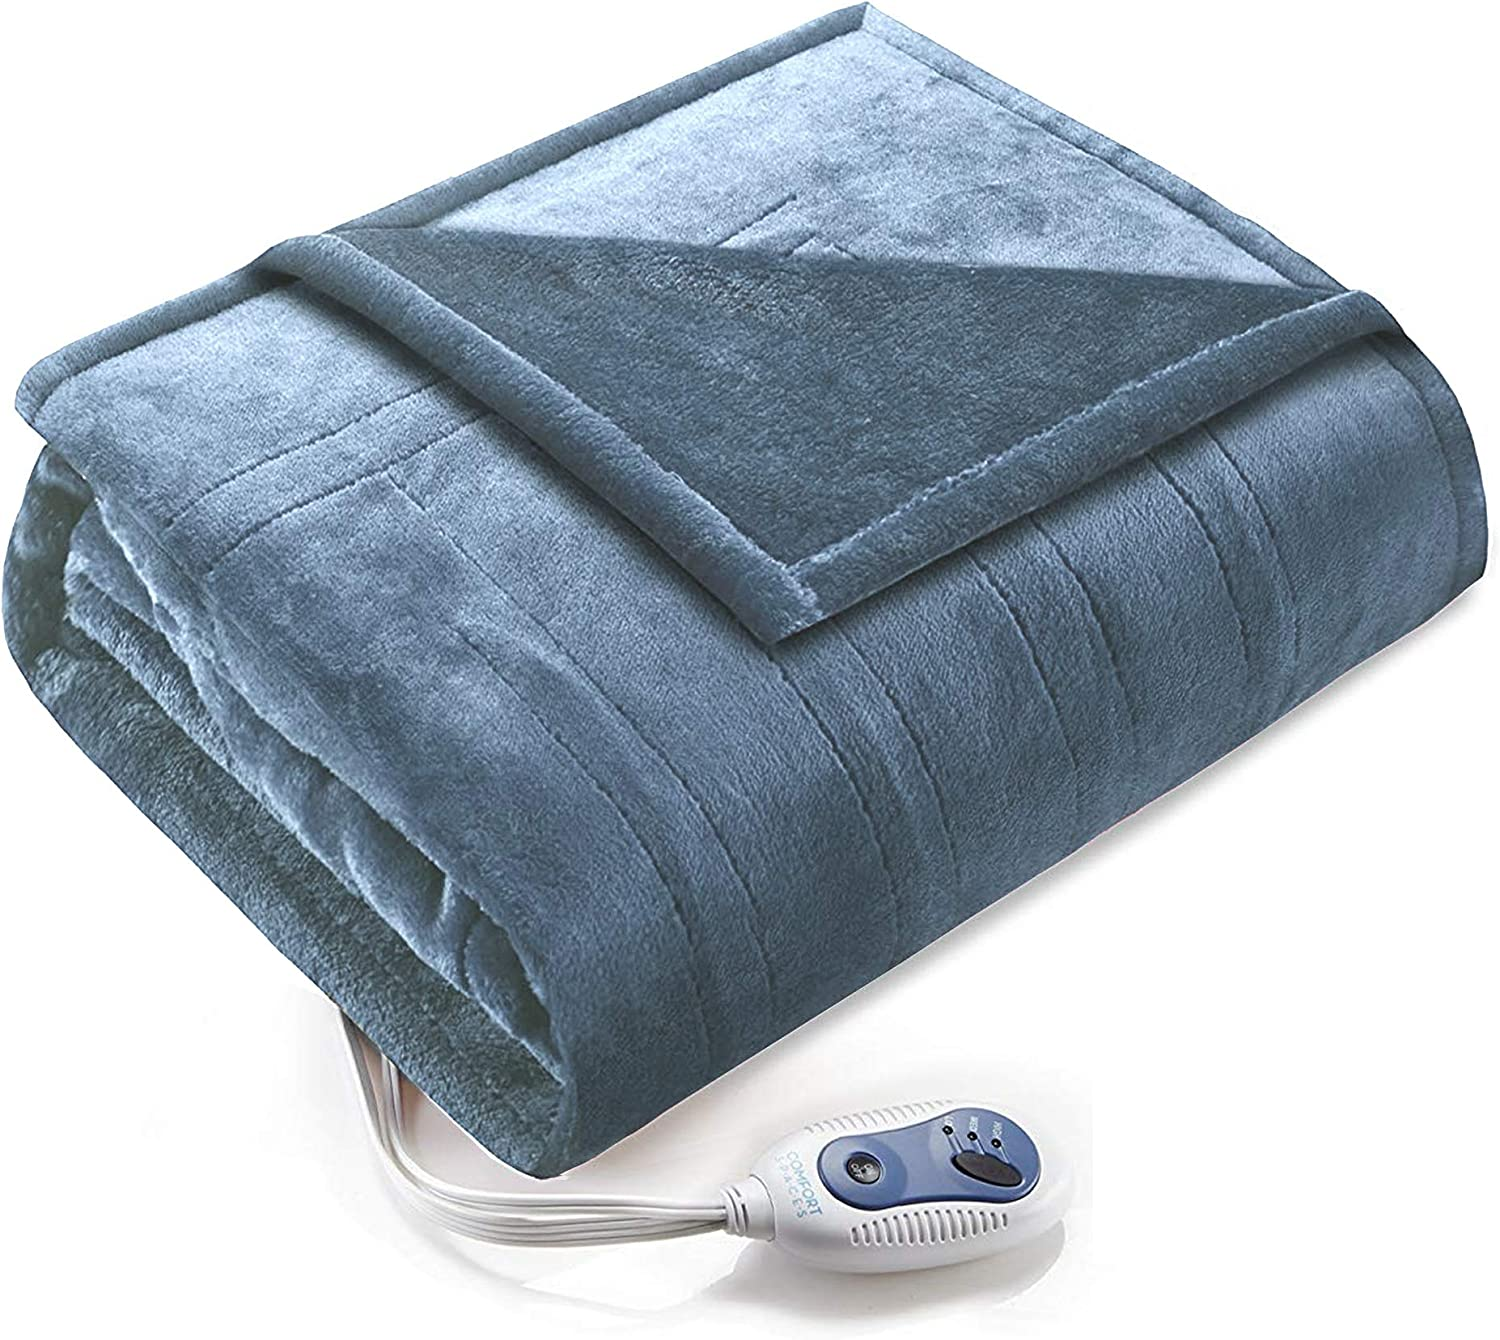 Comfort Spaces Luxury Classic Microplush 1 S Piece Blanket Baltimore Mall Wrap Electric